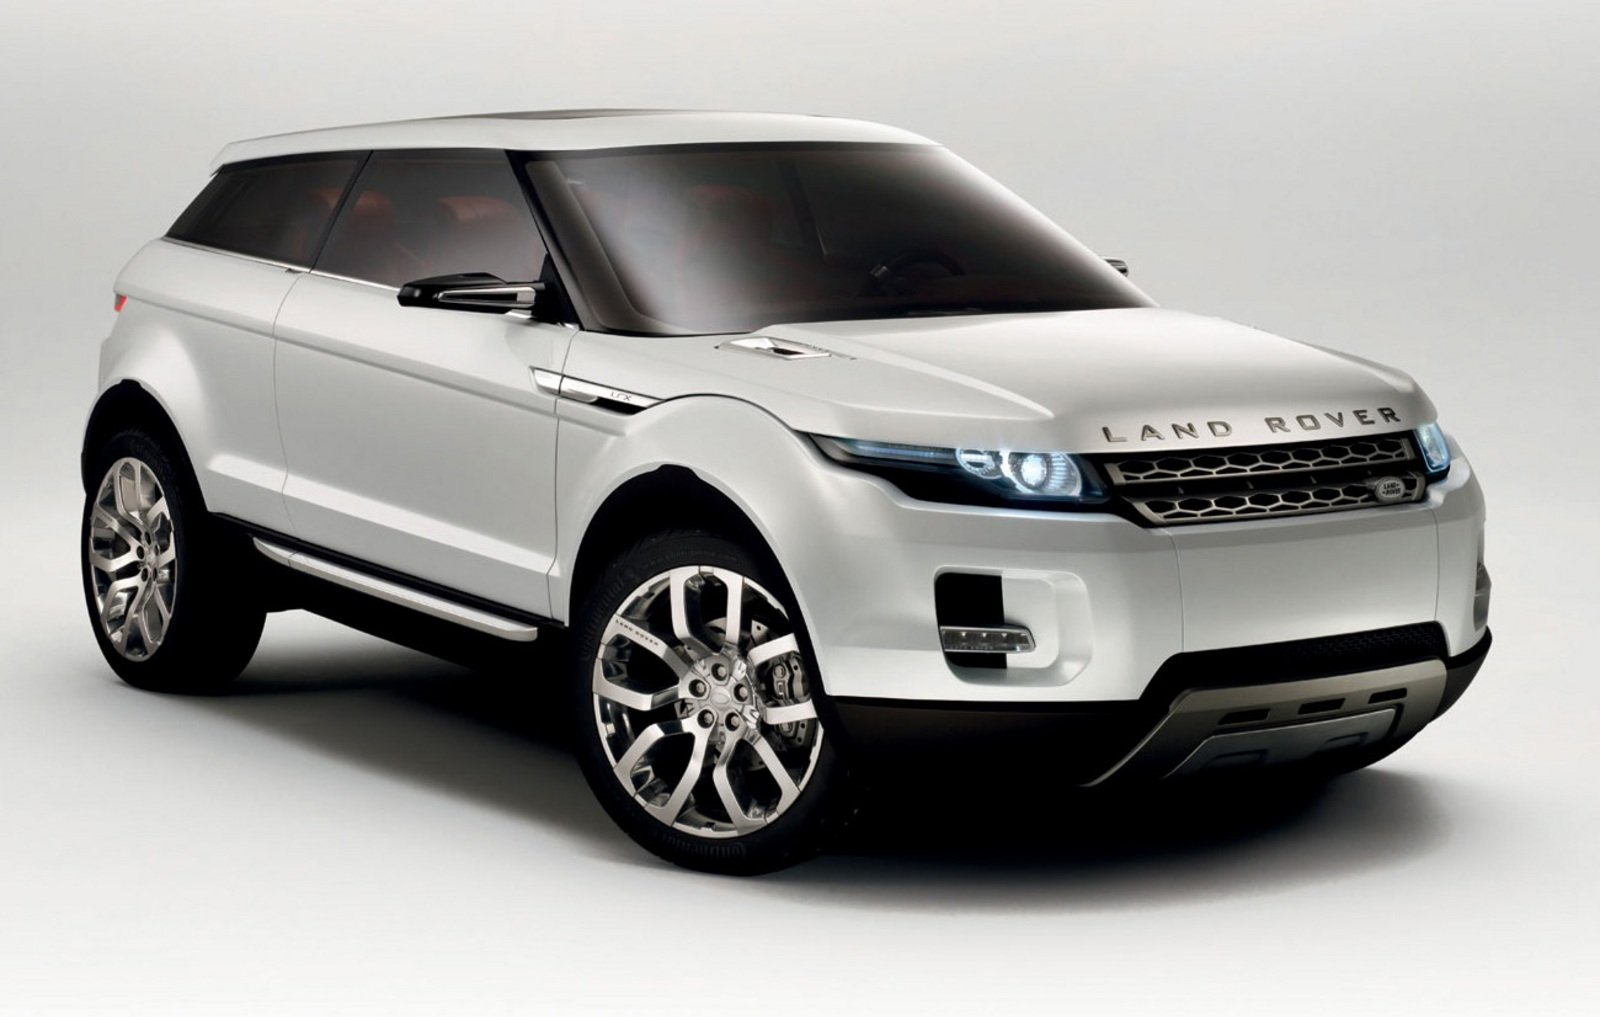 https://pictures.topspeed.com/IMG/crop/200802/land-rover-lrx-conce-1_1600x0w.jpg